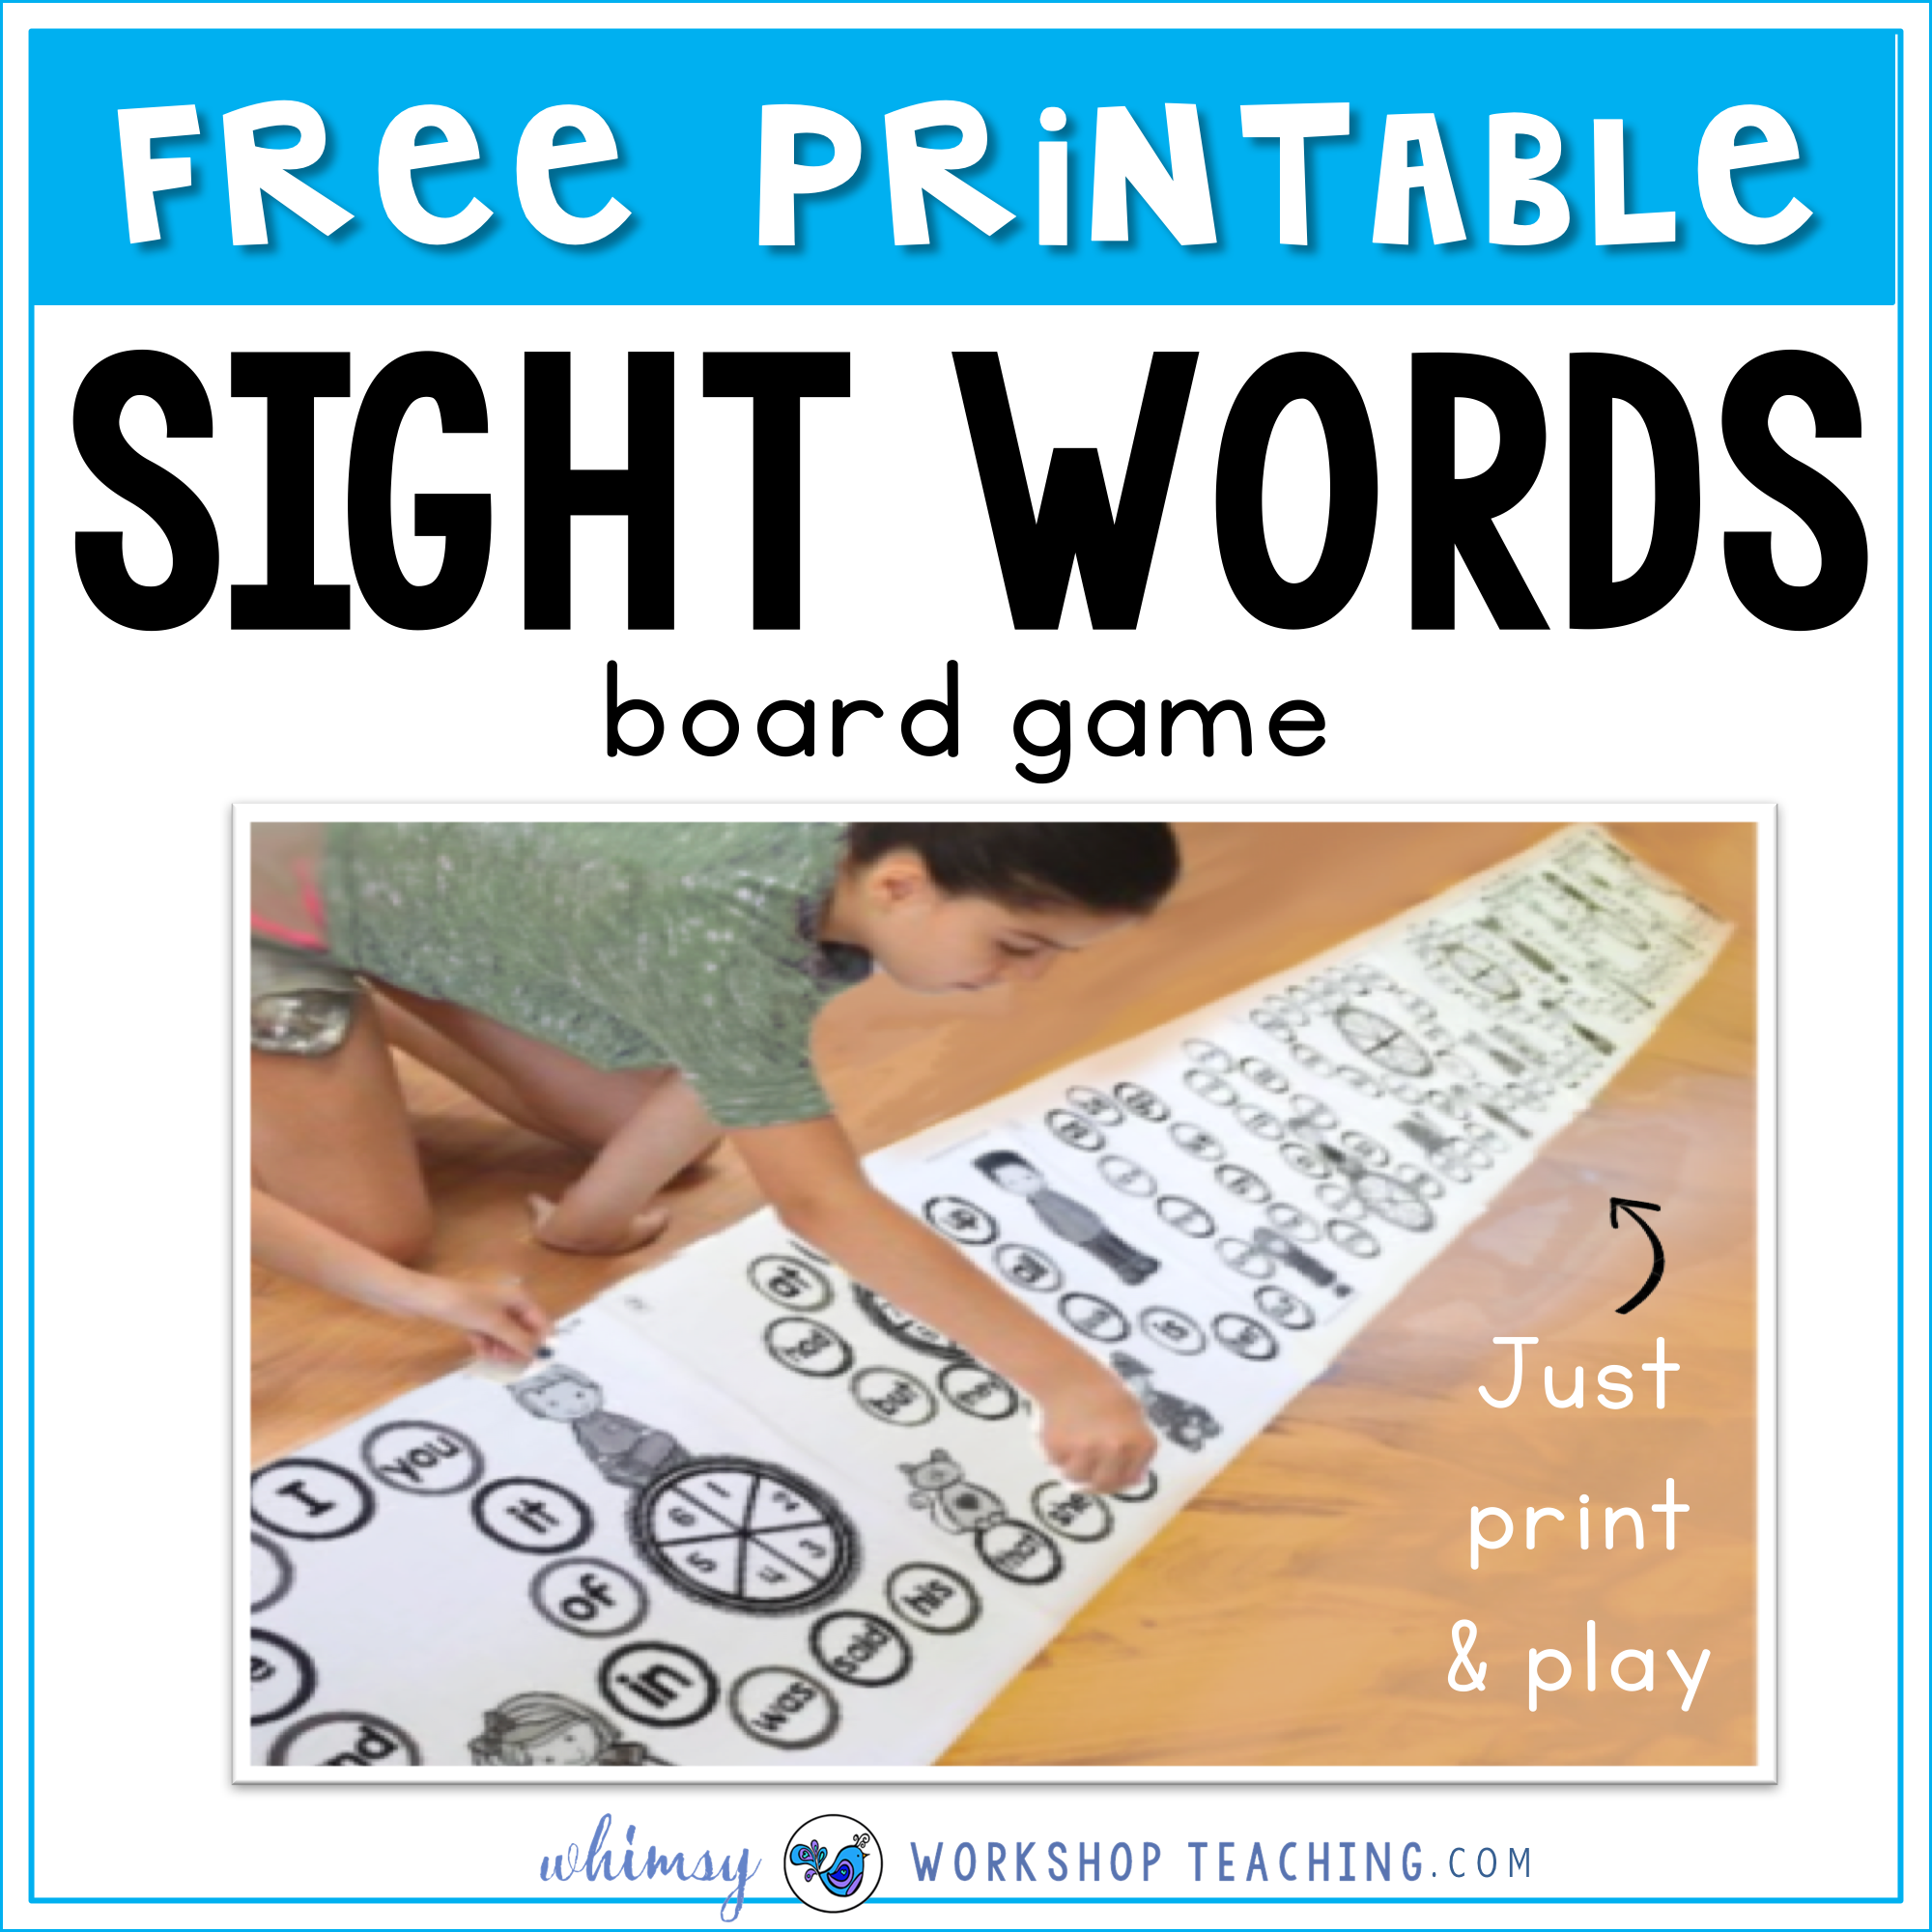 spelling patterns and sight words whimsy workshop teaching